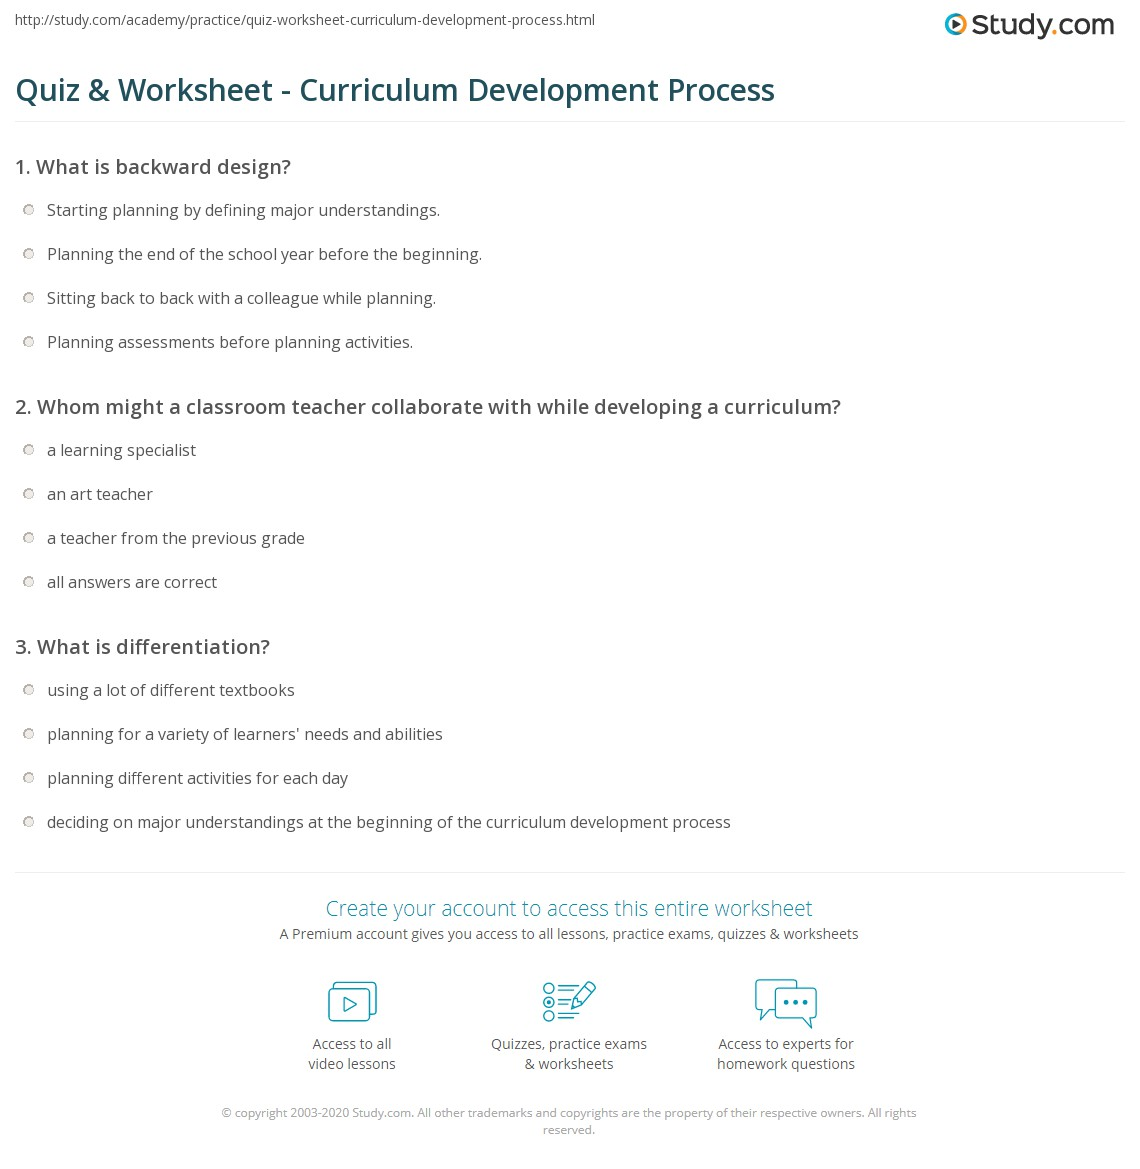 worksheet Curriculum Worksheet quiz worksheet curriculum development process study com print what is the worksheet